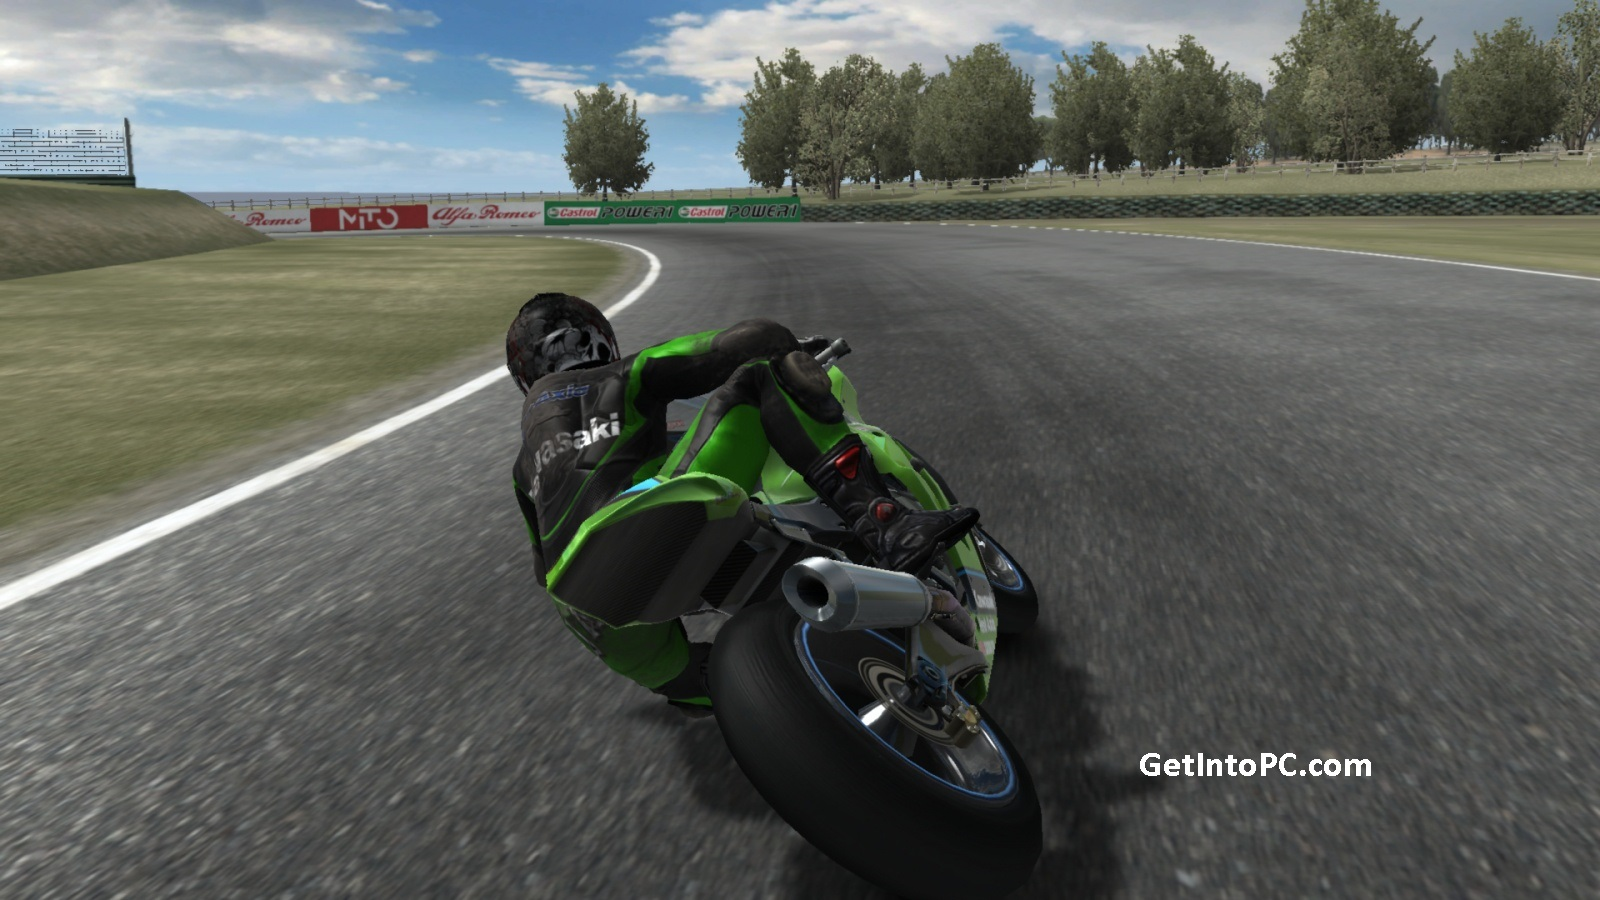 Bike Racing Games This Bike racing game has